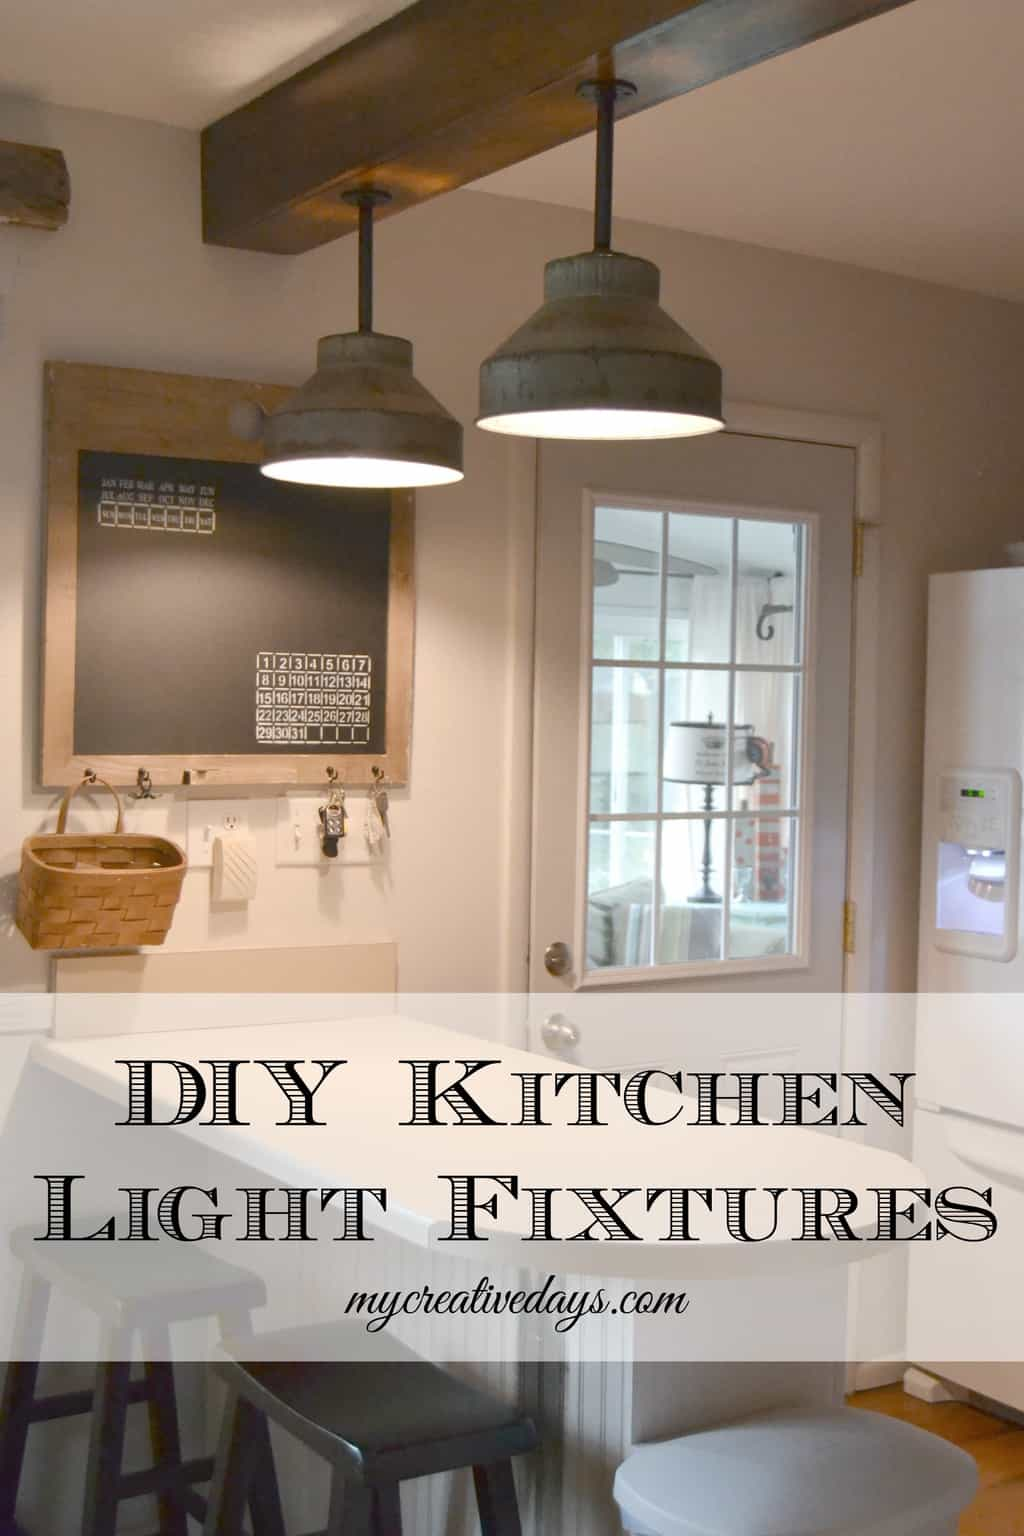 diy kitchen light fixtures part 2 kitchen light fixture Pin this DIY Kitchen Light Fixtures Part 2 mycreativedays com